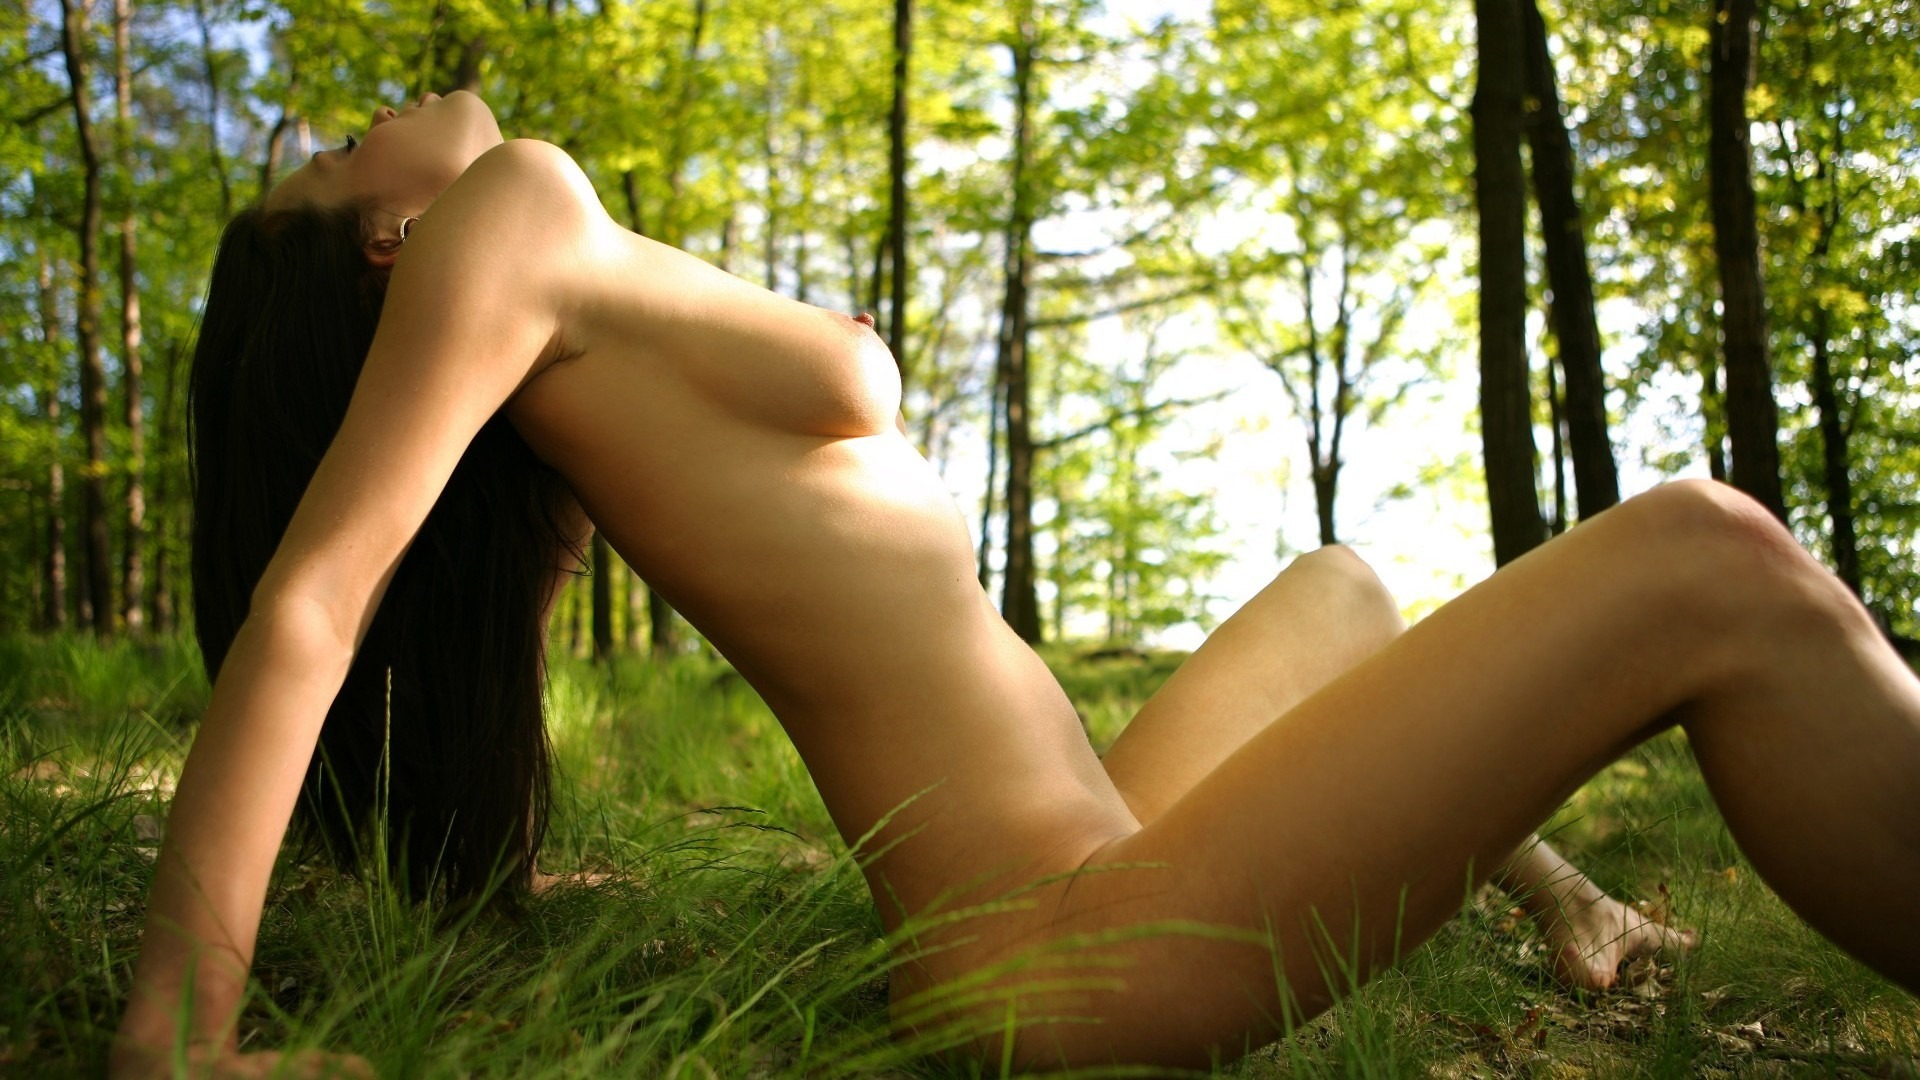 Young asian woman in natural setting naked but covered with a leaf